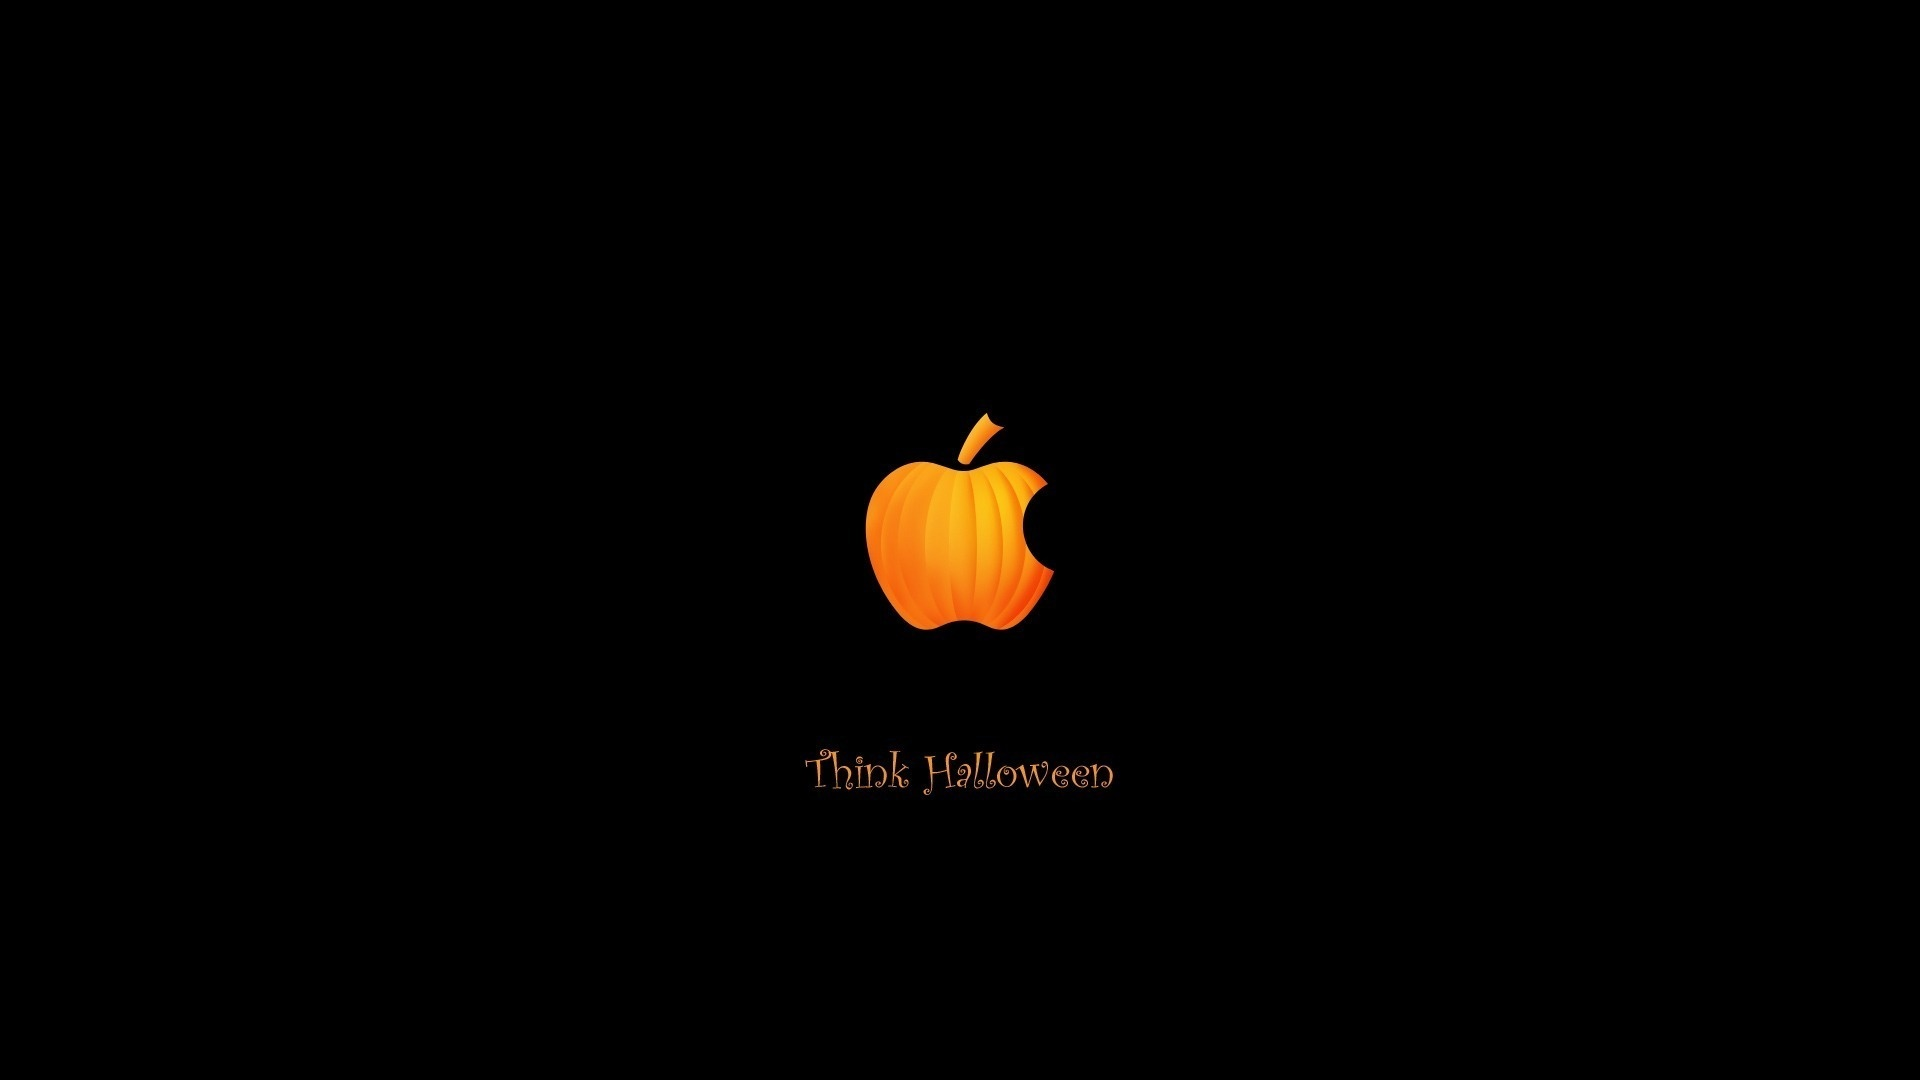 Apple and Halloween wallpaper download Apple and Halloween 1920x1080